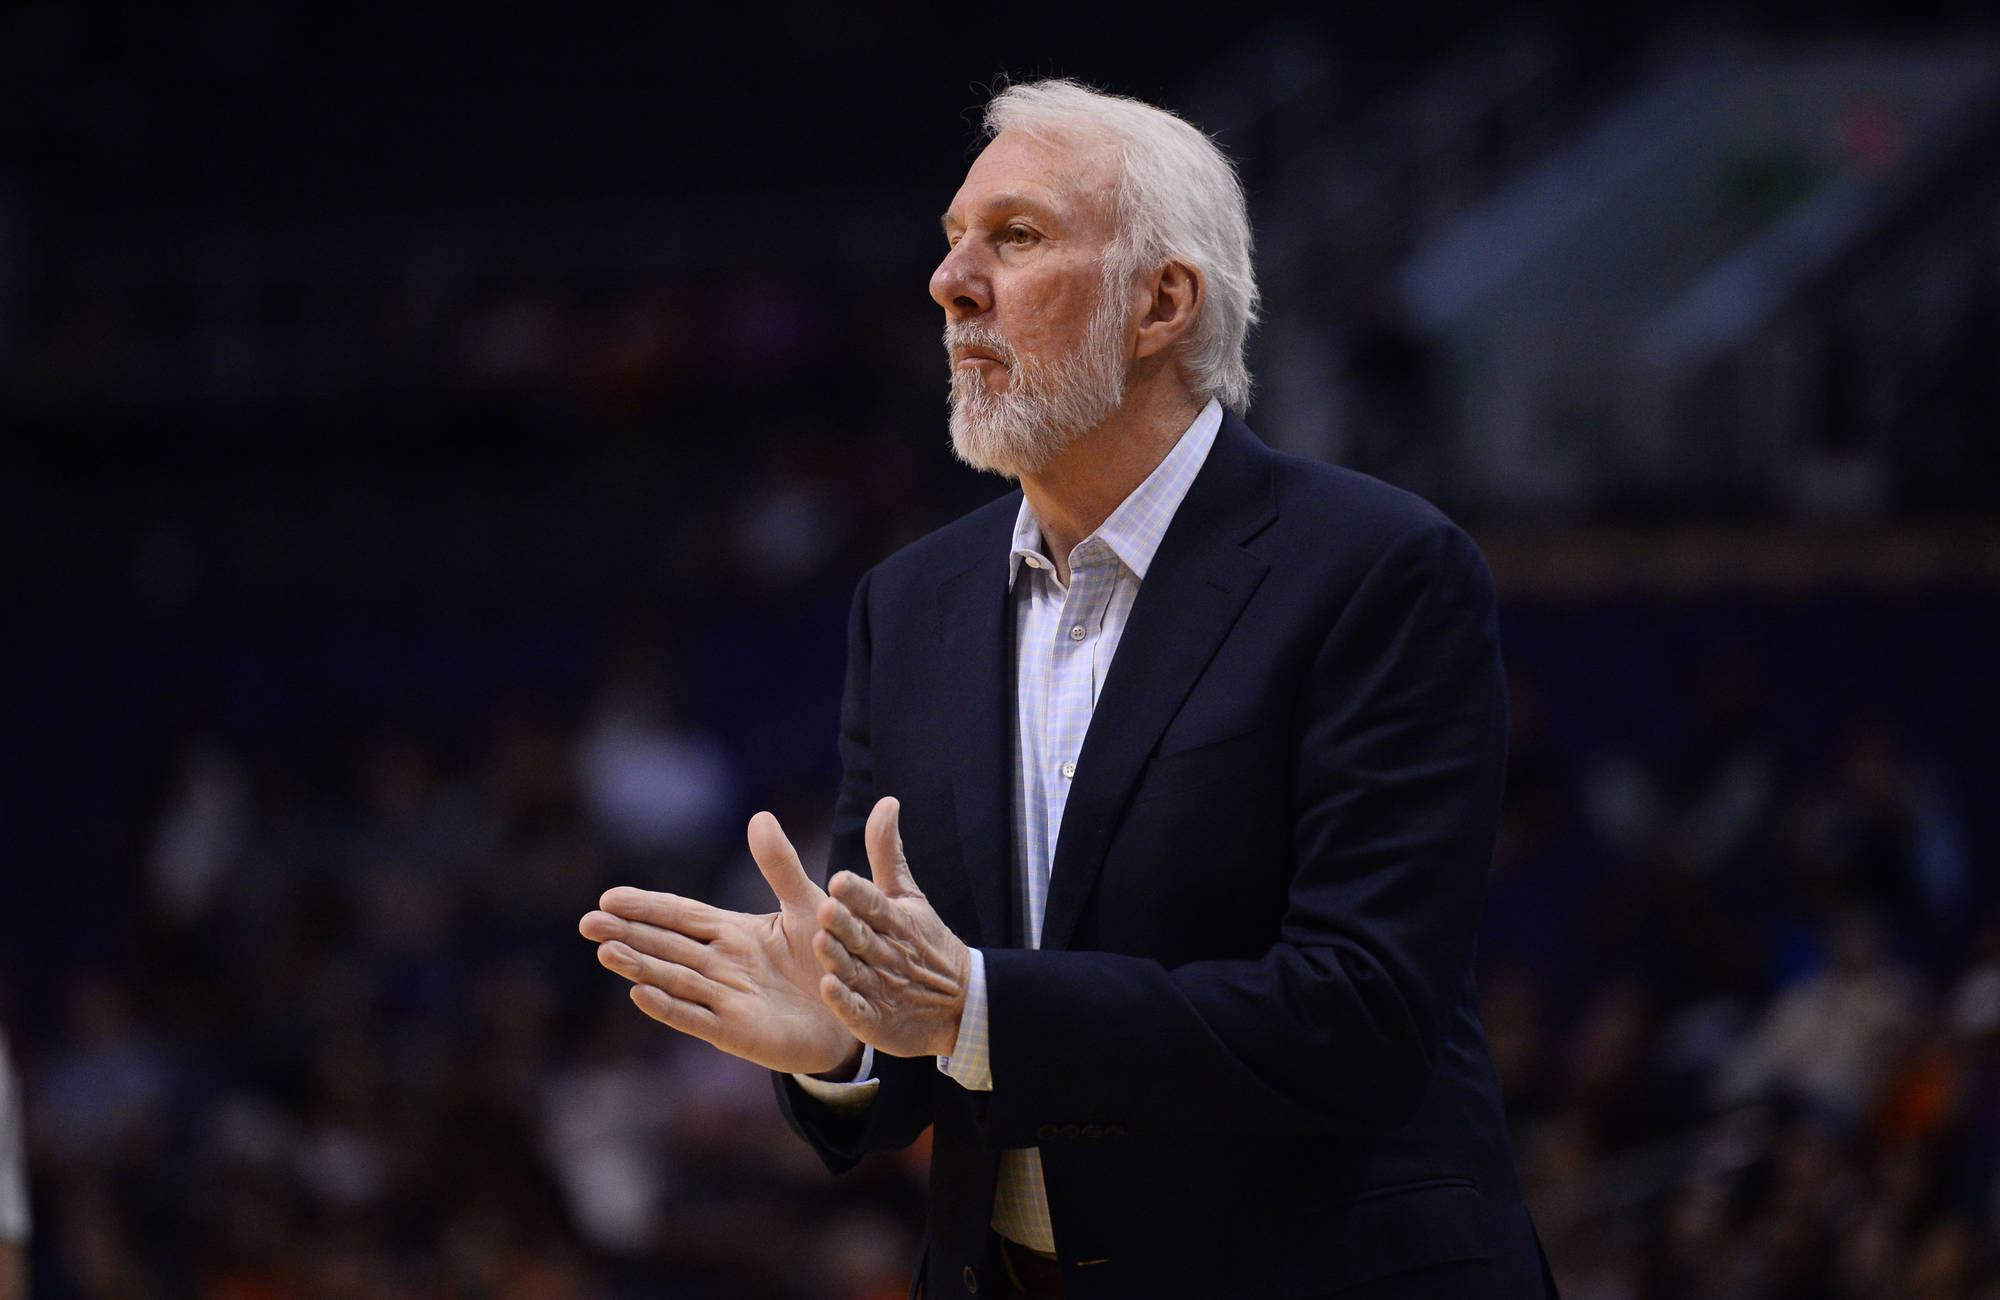 Gregg Popovich told Bill Kennedy that he is courageous for coming out